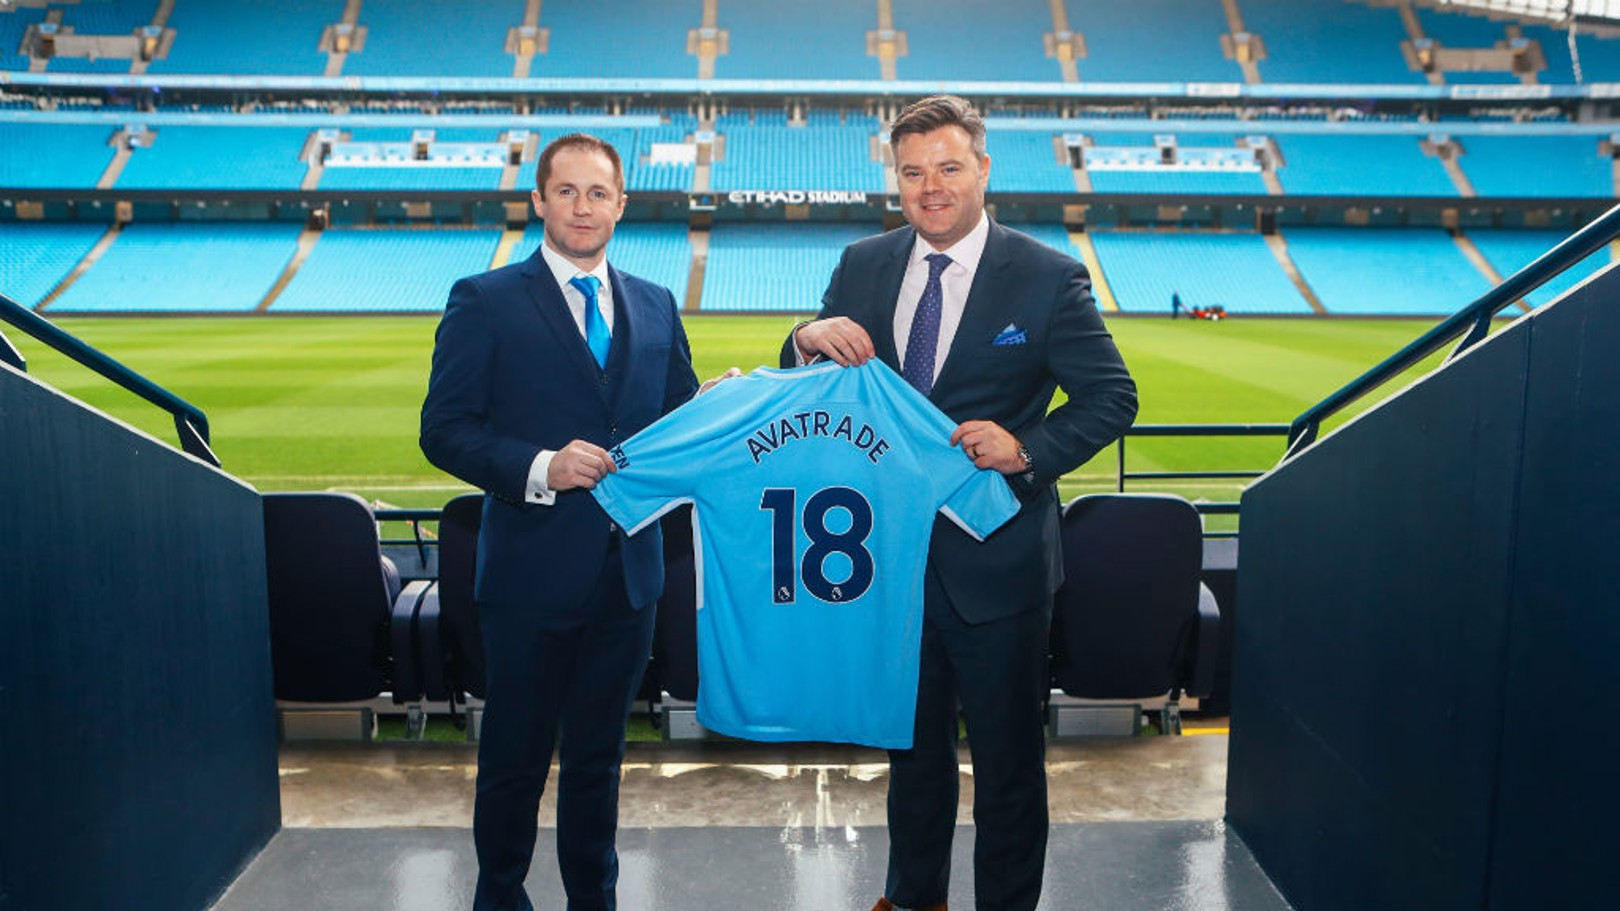 Manchester City have announced a global partnership with Avatrade